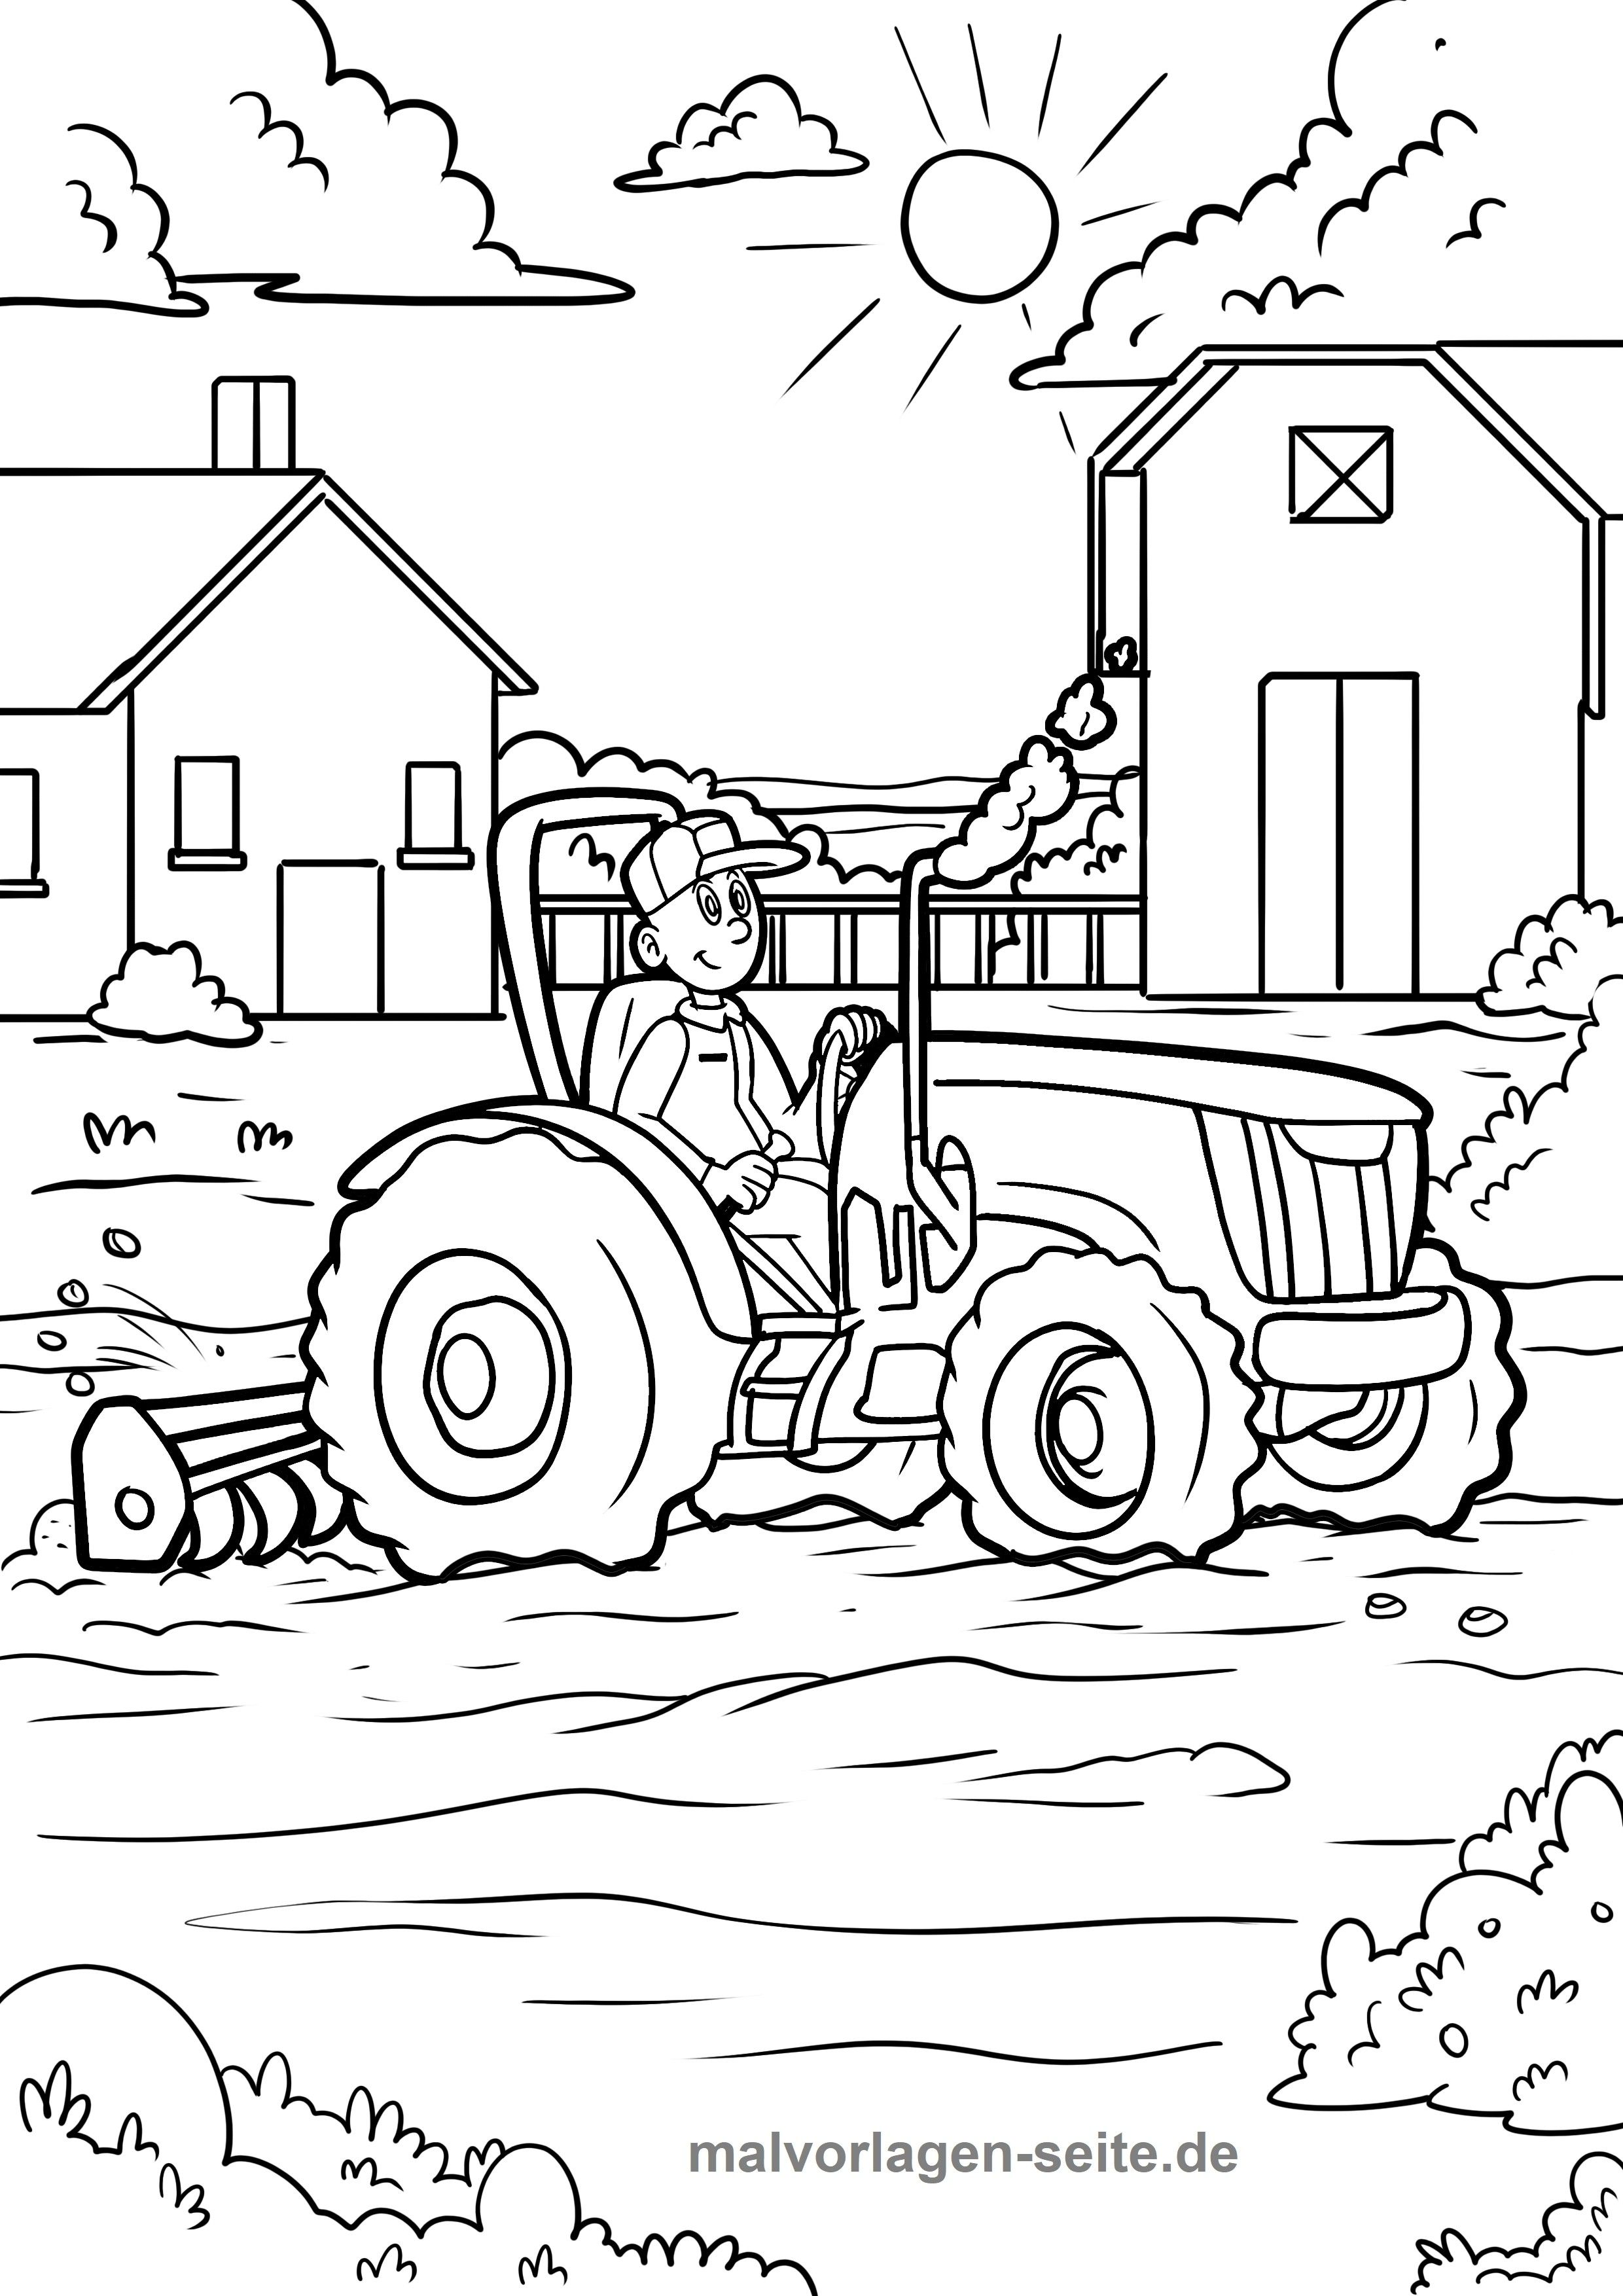 Malvorlagen Malvorlagenfurkinder Malvorlagenfurerwachsene Farm Coloring Pages Coloring Pages For Boys Farm Animal Coloring Pages